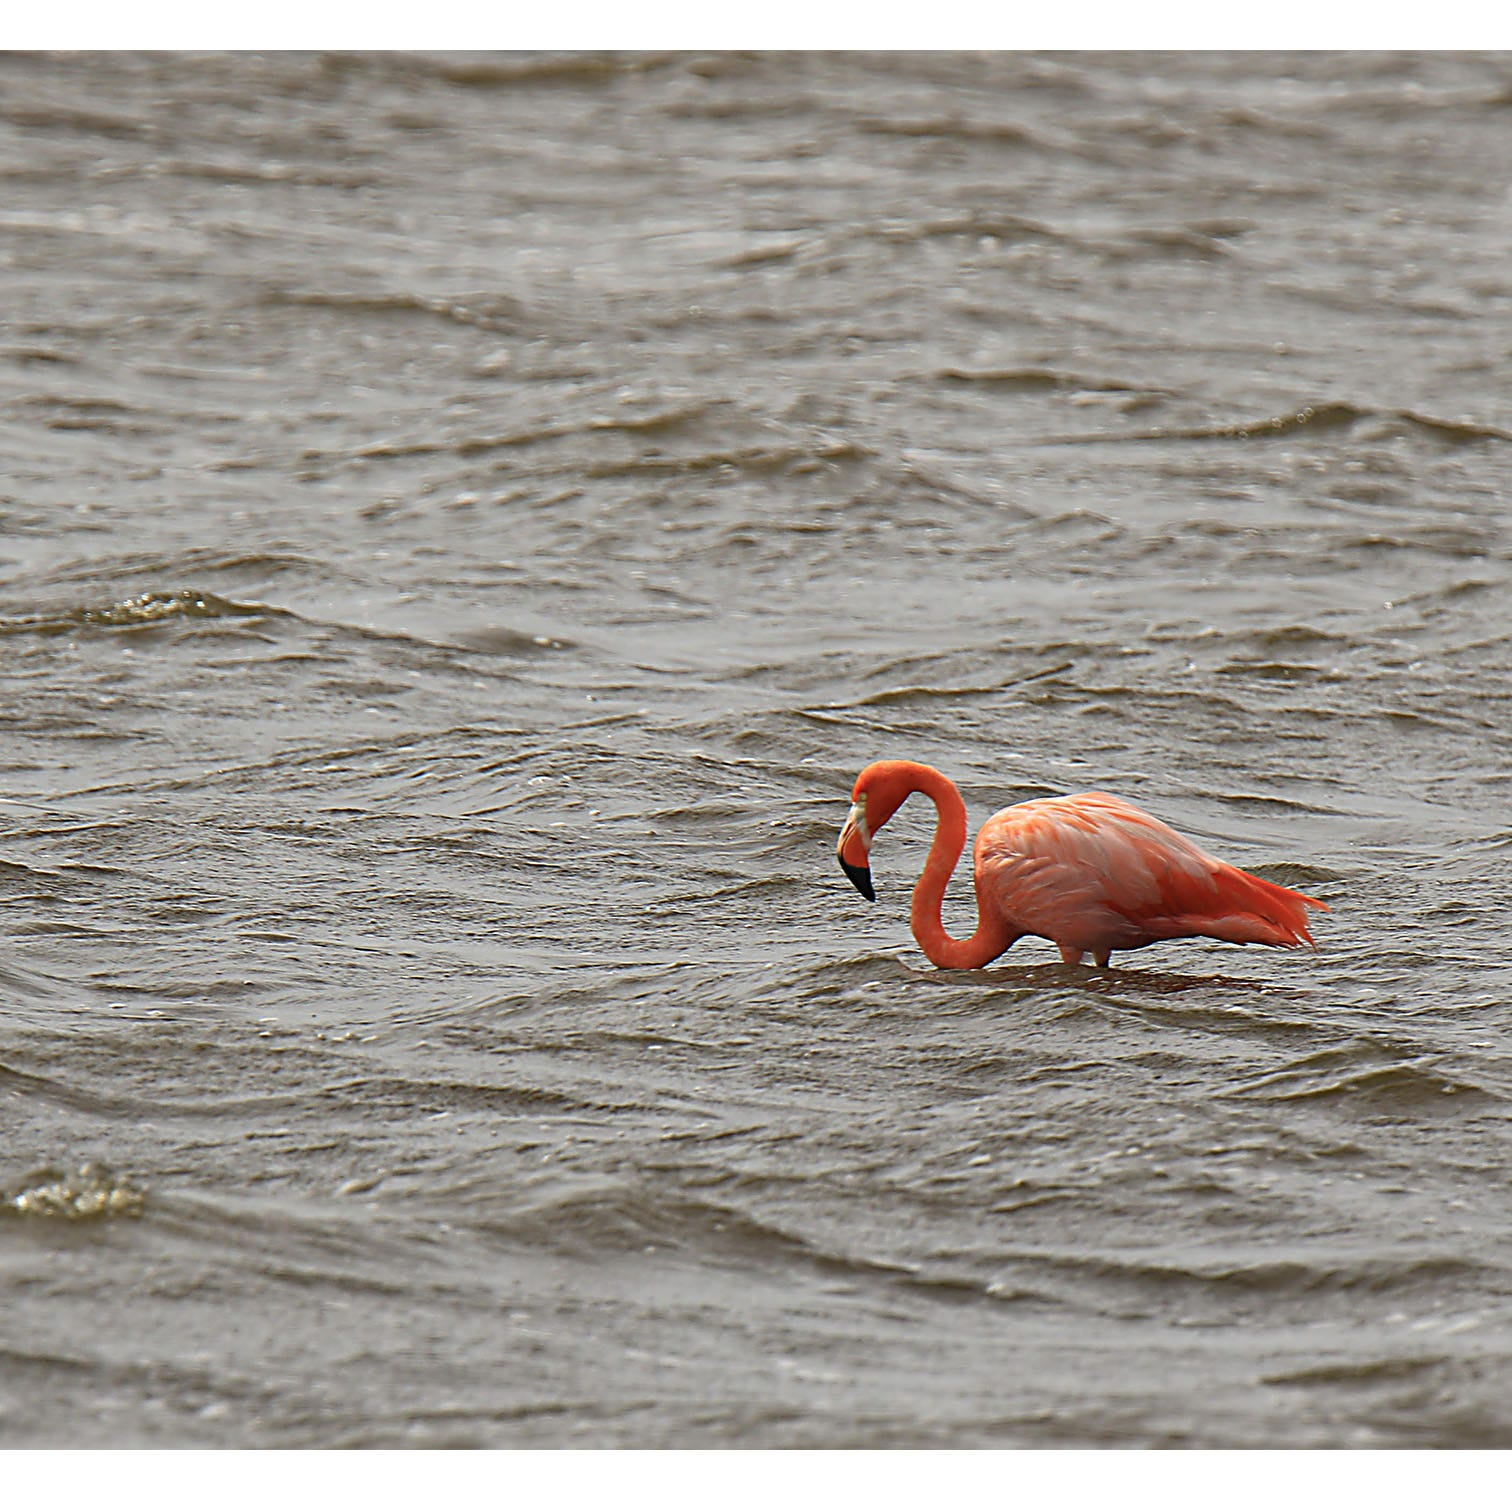 After Hurricane Michael, St. Marks tickled pink with flamingo sighting